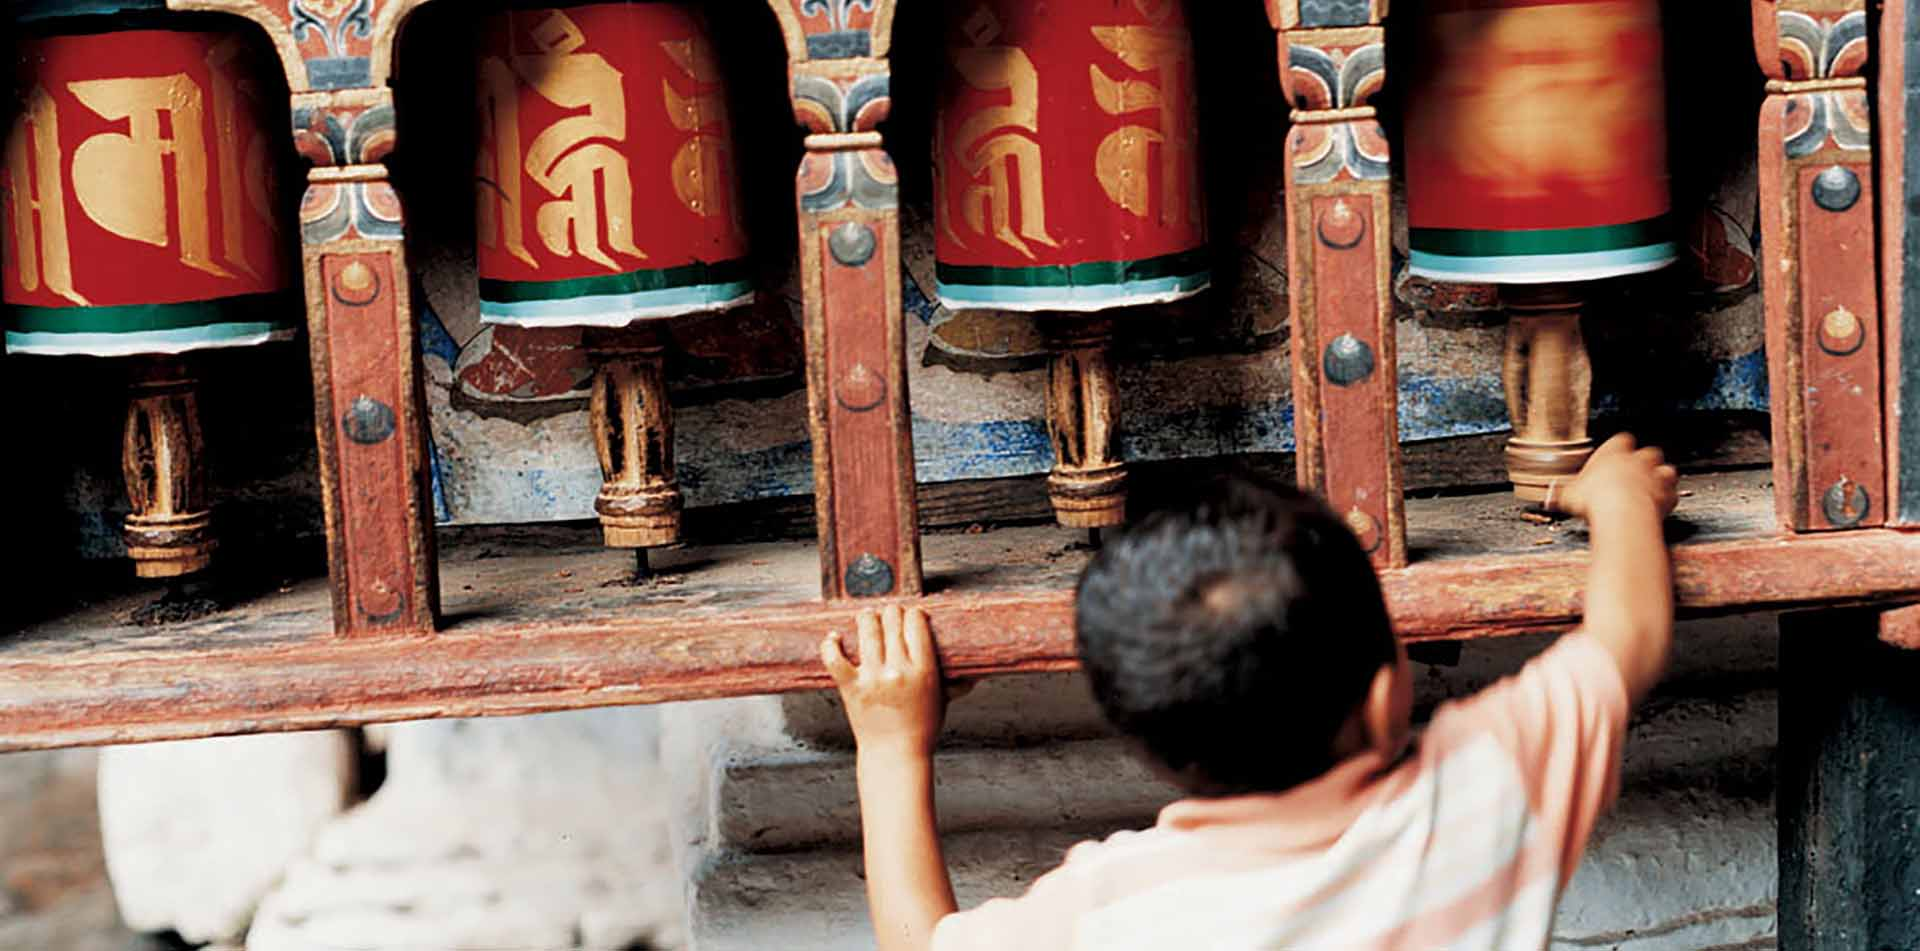 Asia Bhutan child spinning Buddhist prayer wheels in Himalayan mountains - luxury vacation destinations